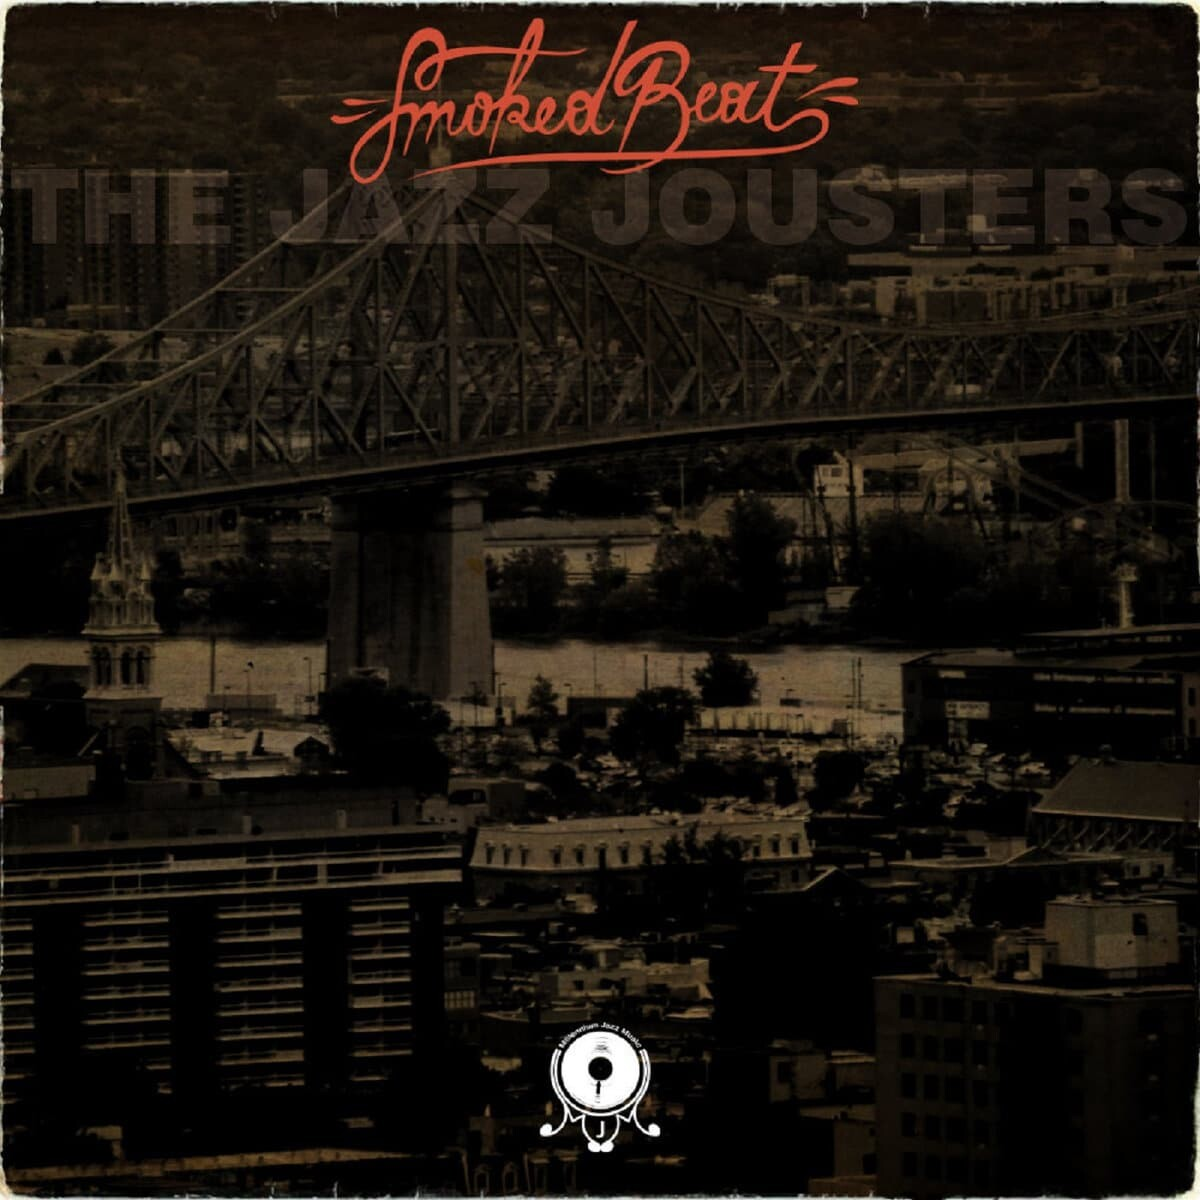 The Jazz Jousters Sessions #1 SmokedBeat